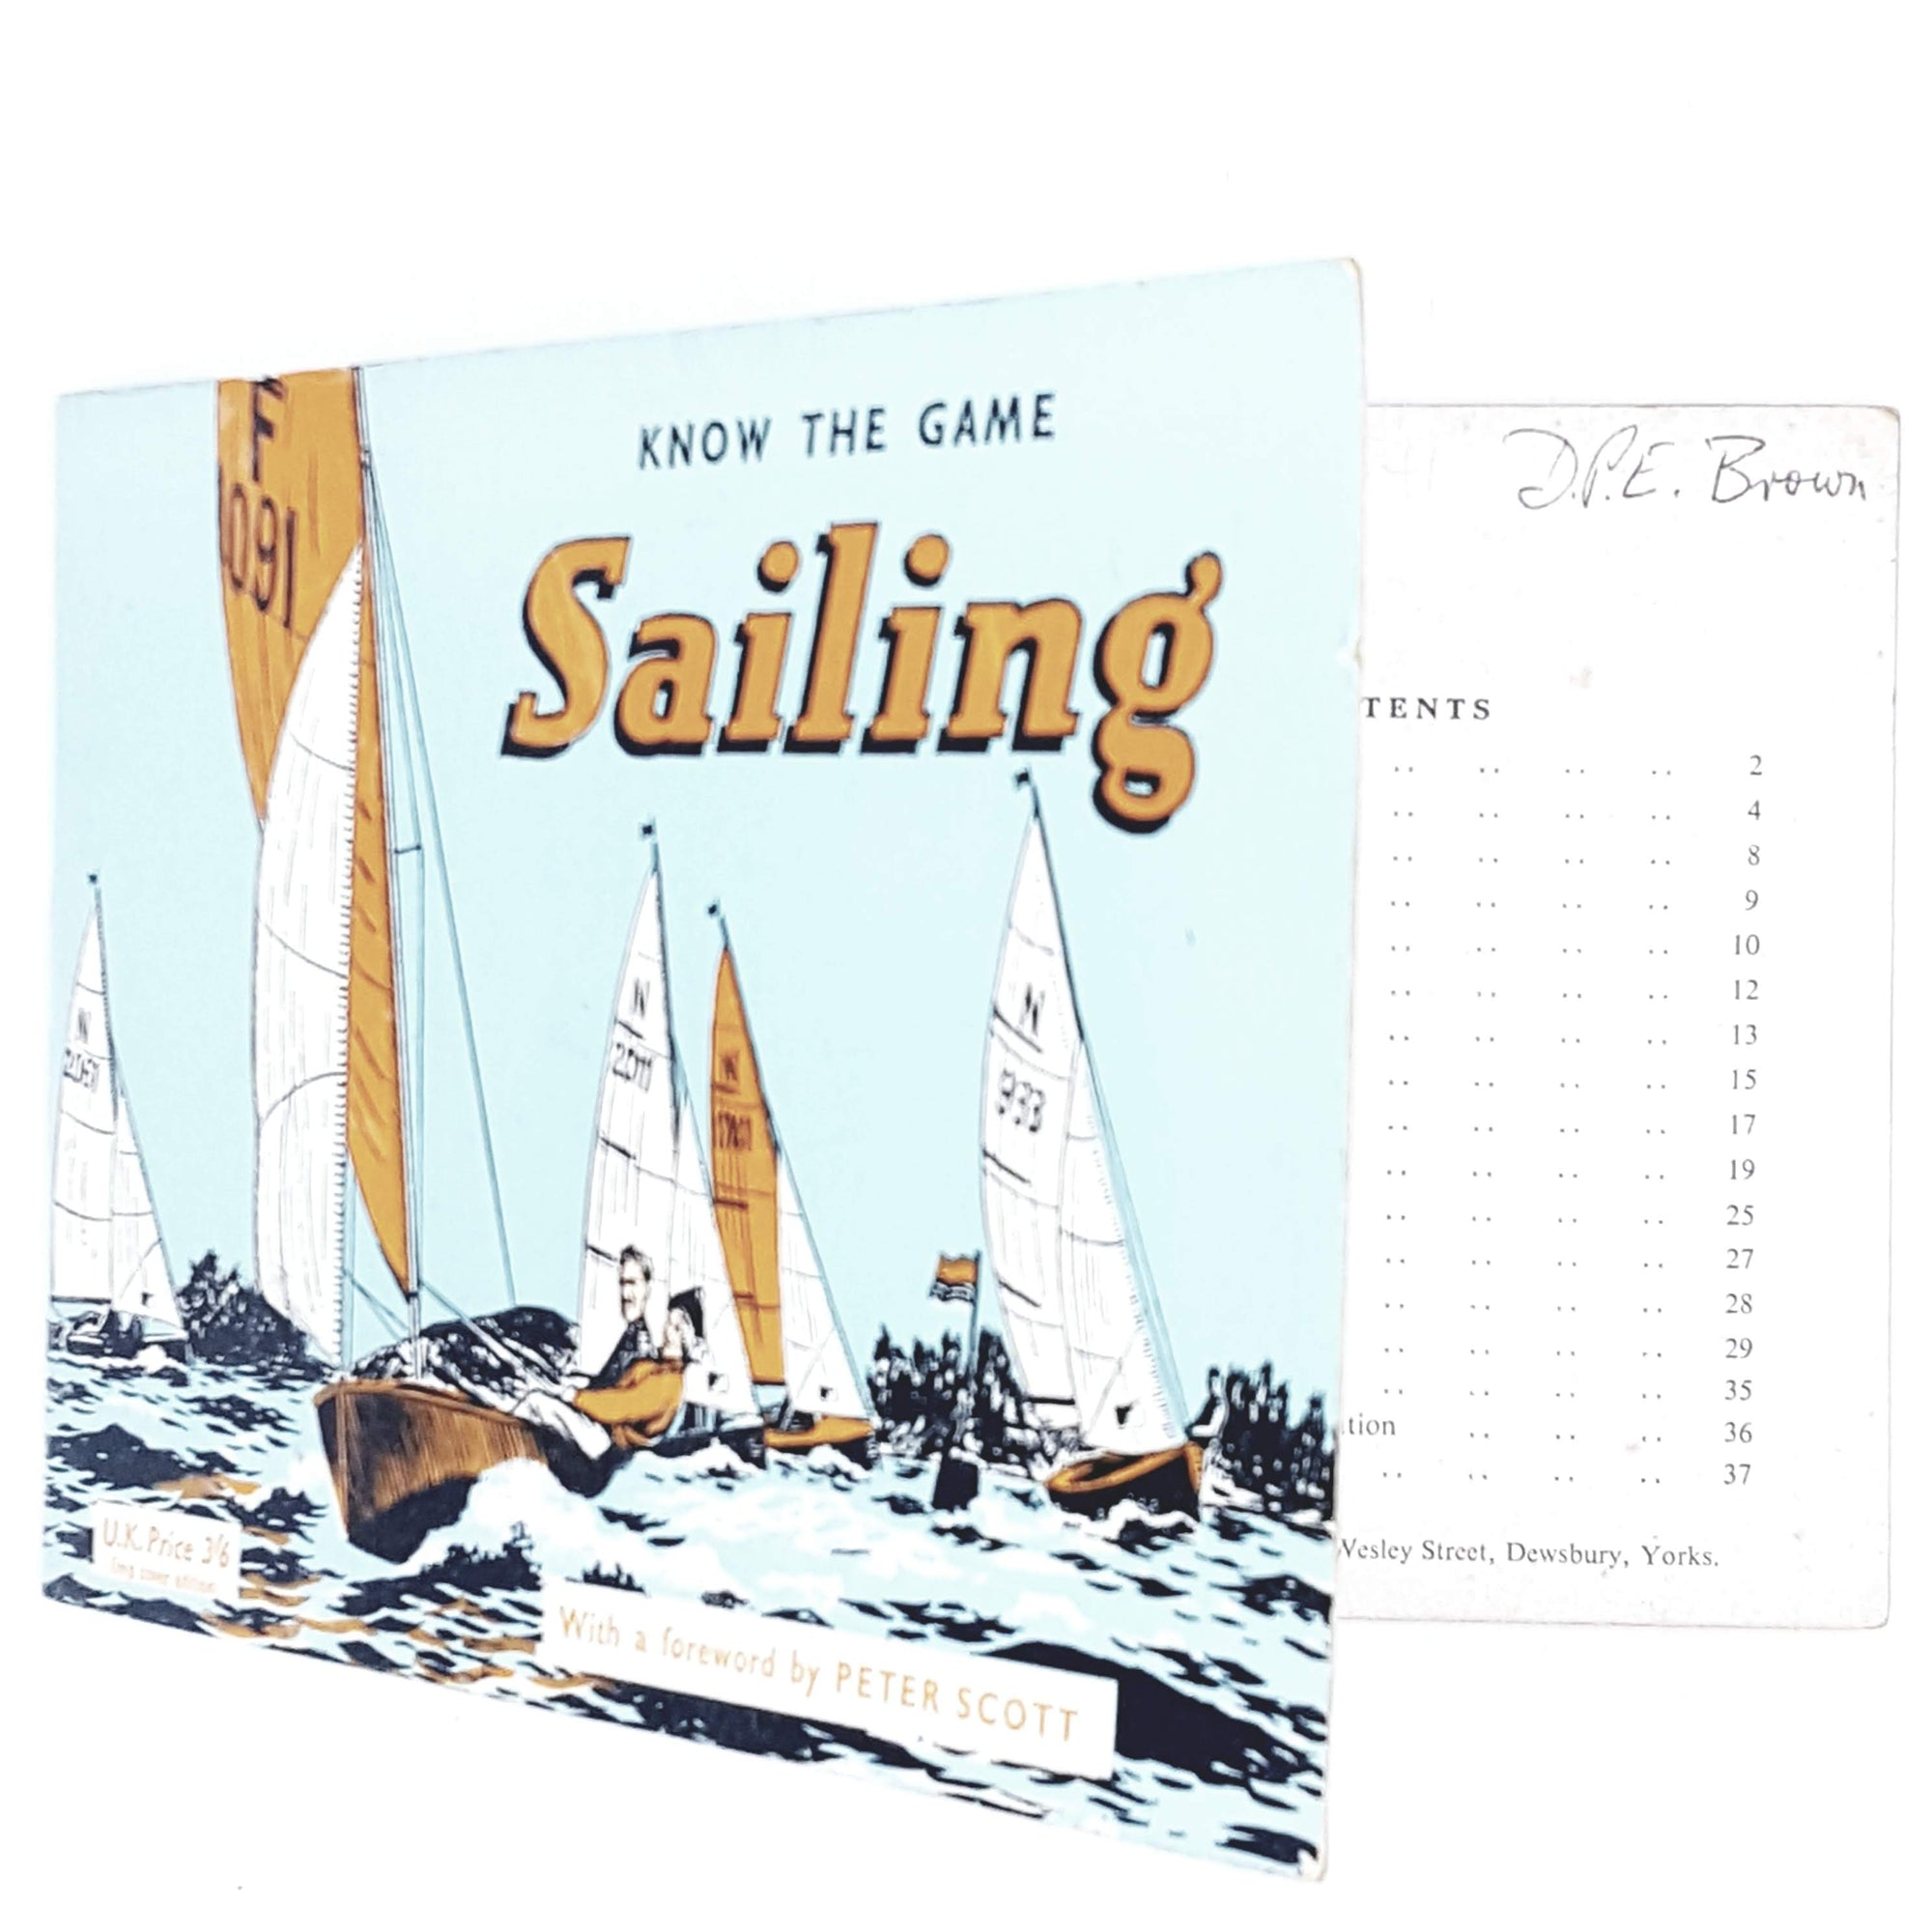 Illustrated Sailing 1959